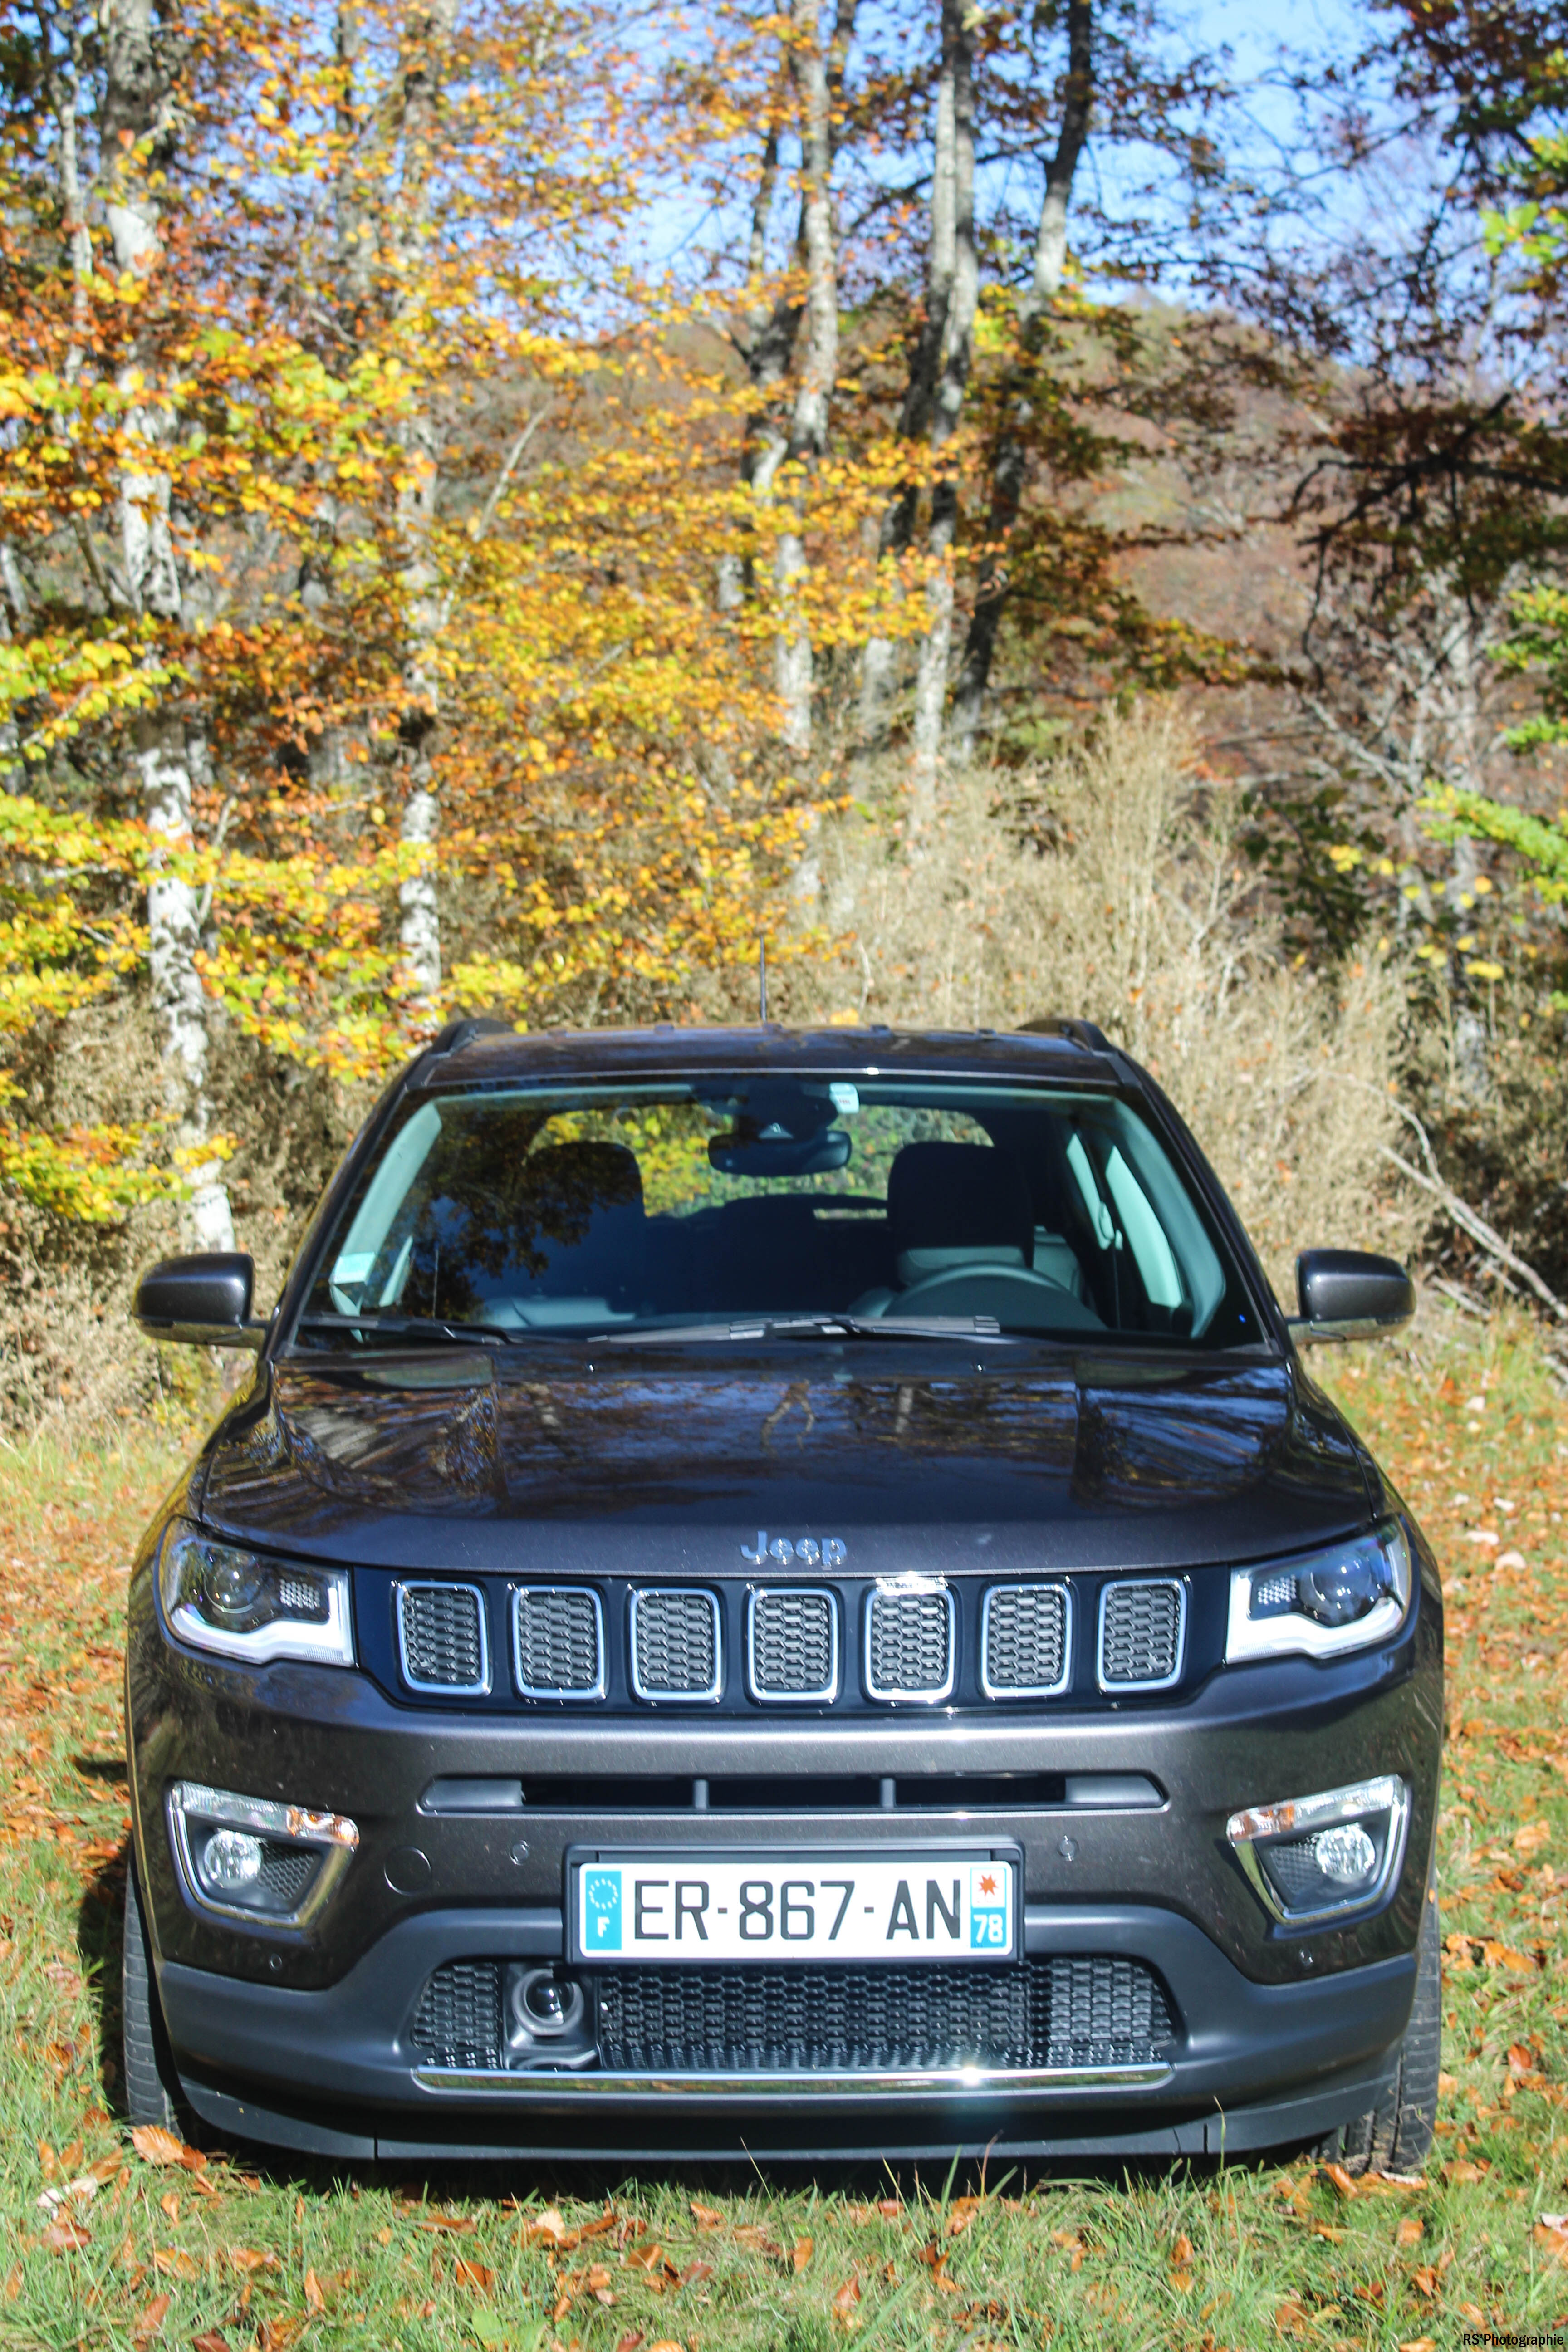 jeepcompass34-jeep-compass-avant-front-Arnaud Demasier-RSPhotographie